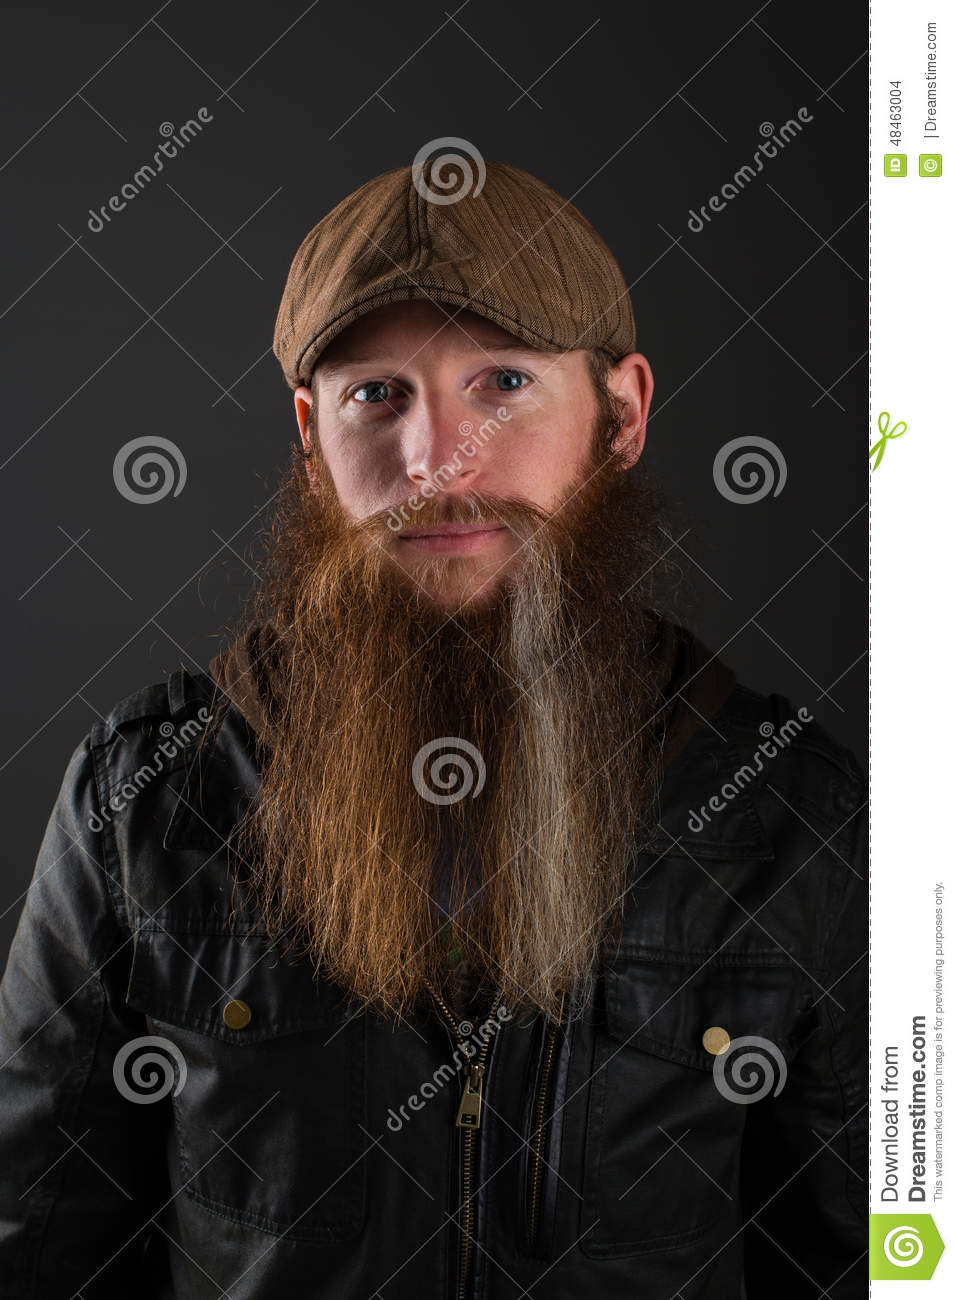 Bearded Man With Leather Jacket And Cap. Stock Photo - Image of ... a6d7dc5939e